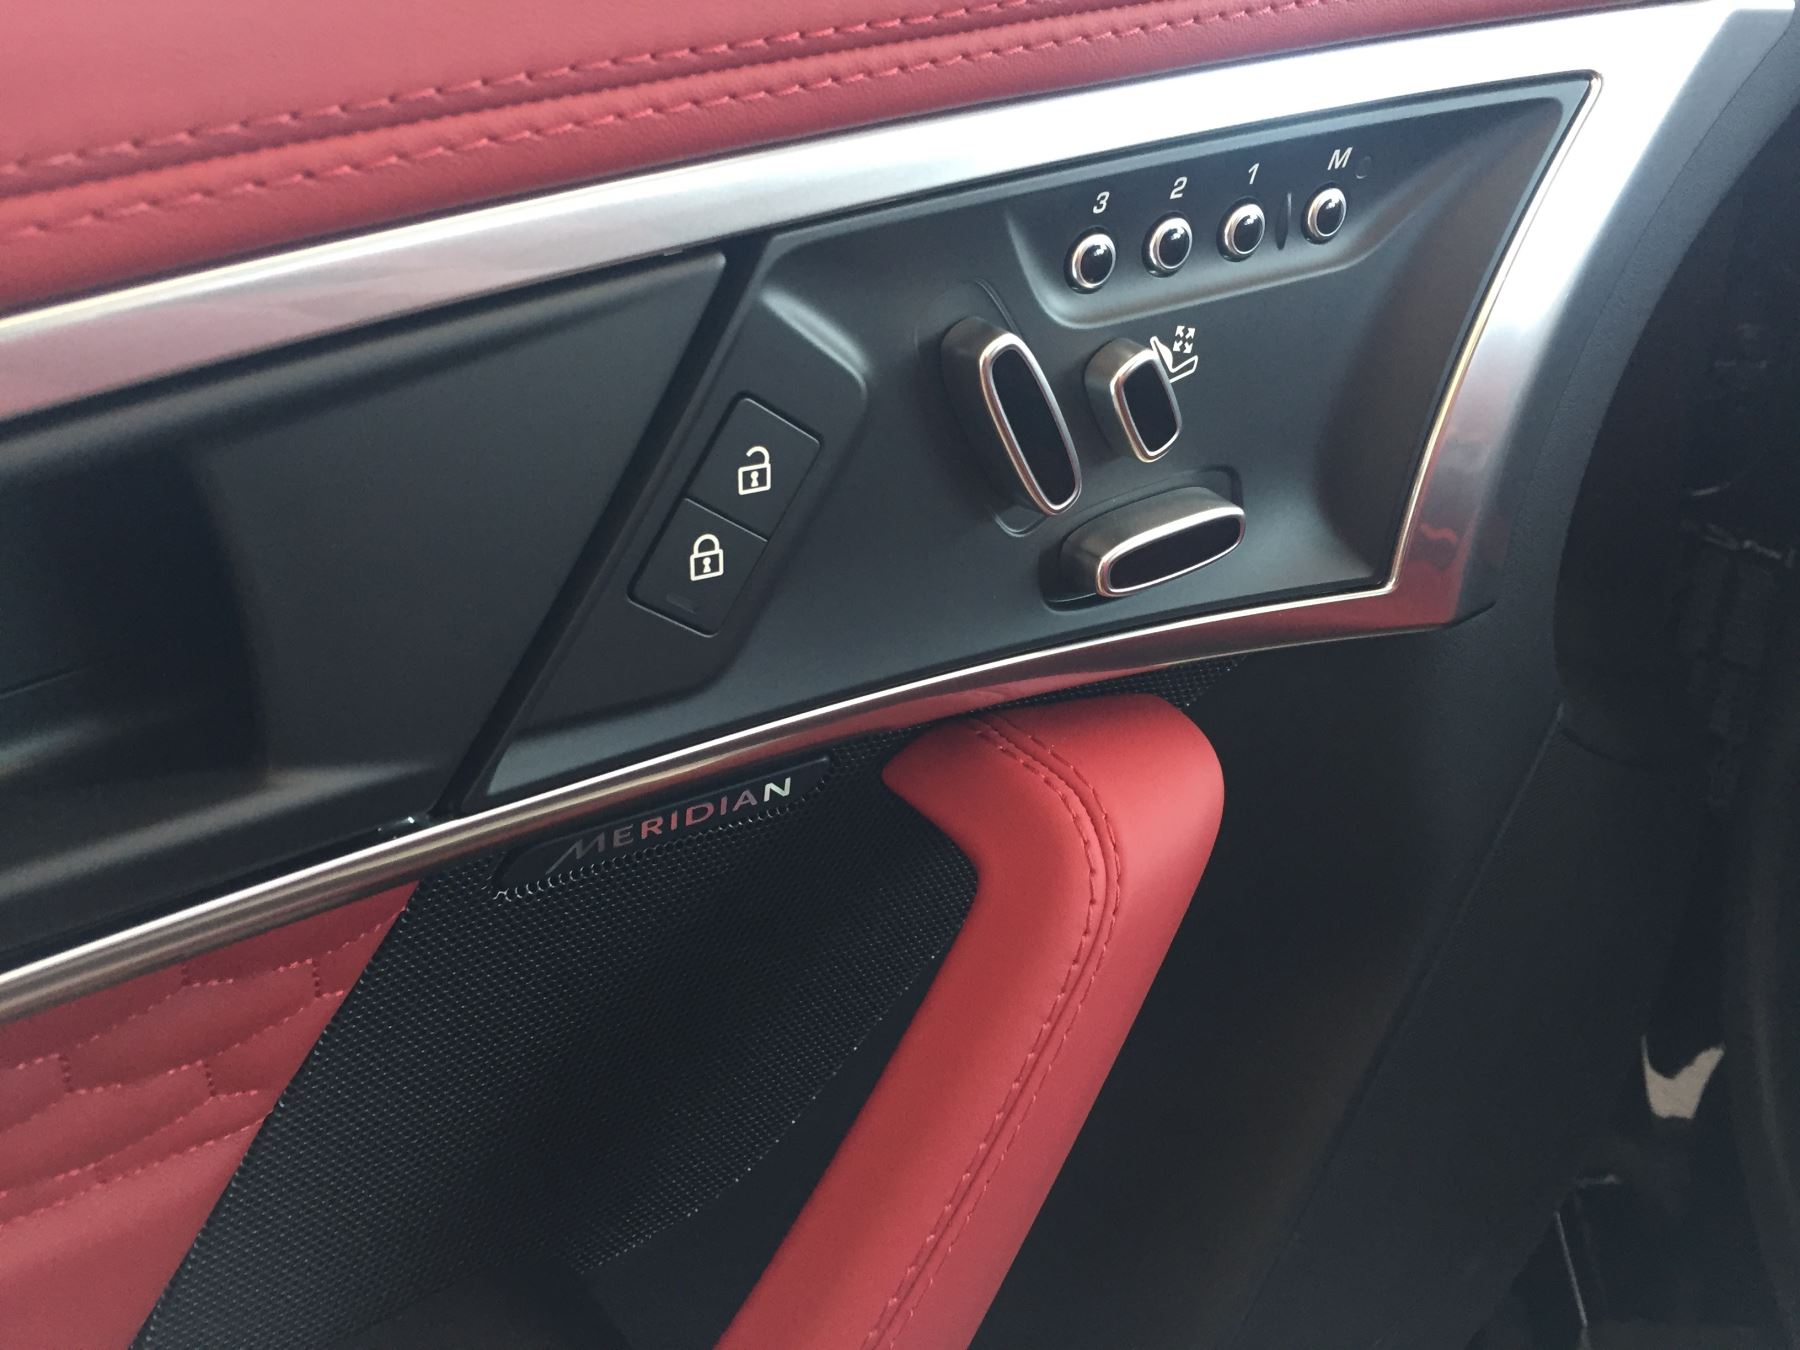 Jaguar F-TYPE 5.0 P450 Supercharged V8 First Edition SPECIAL EDITIONS image 7